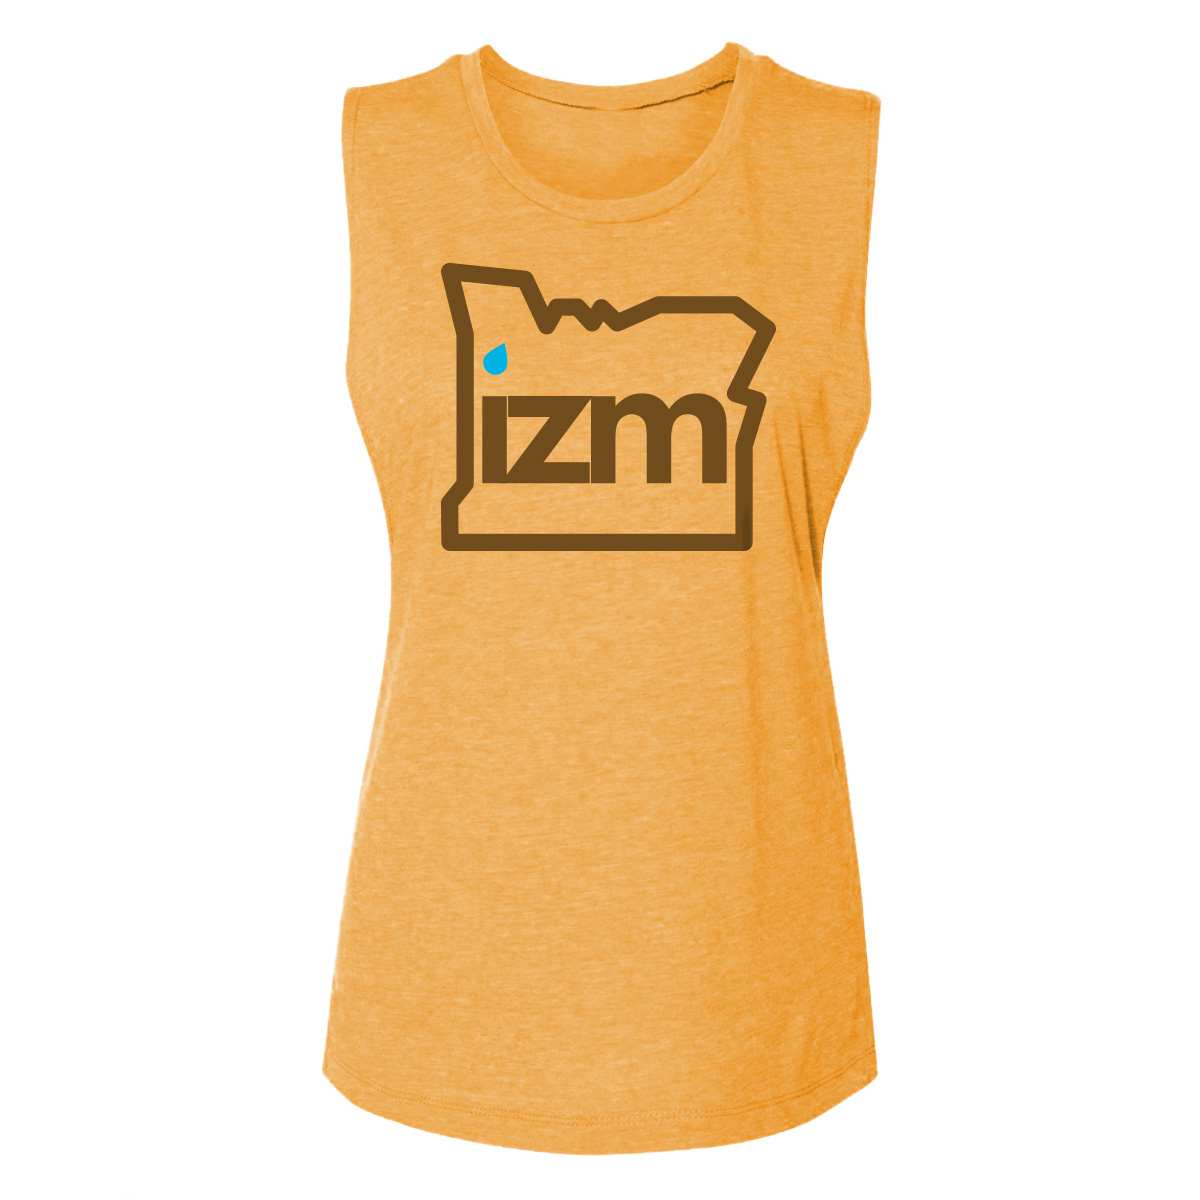 oregonizm-product-tshirt-womens-stateizm-AntiqueGold